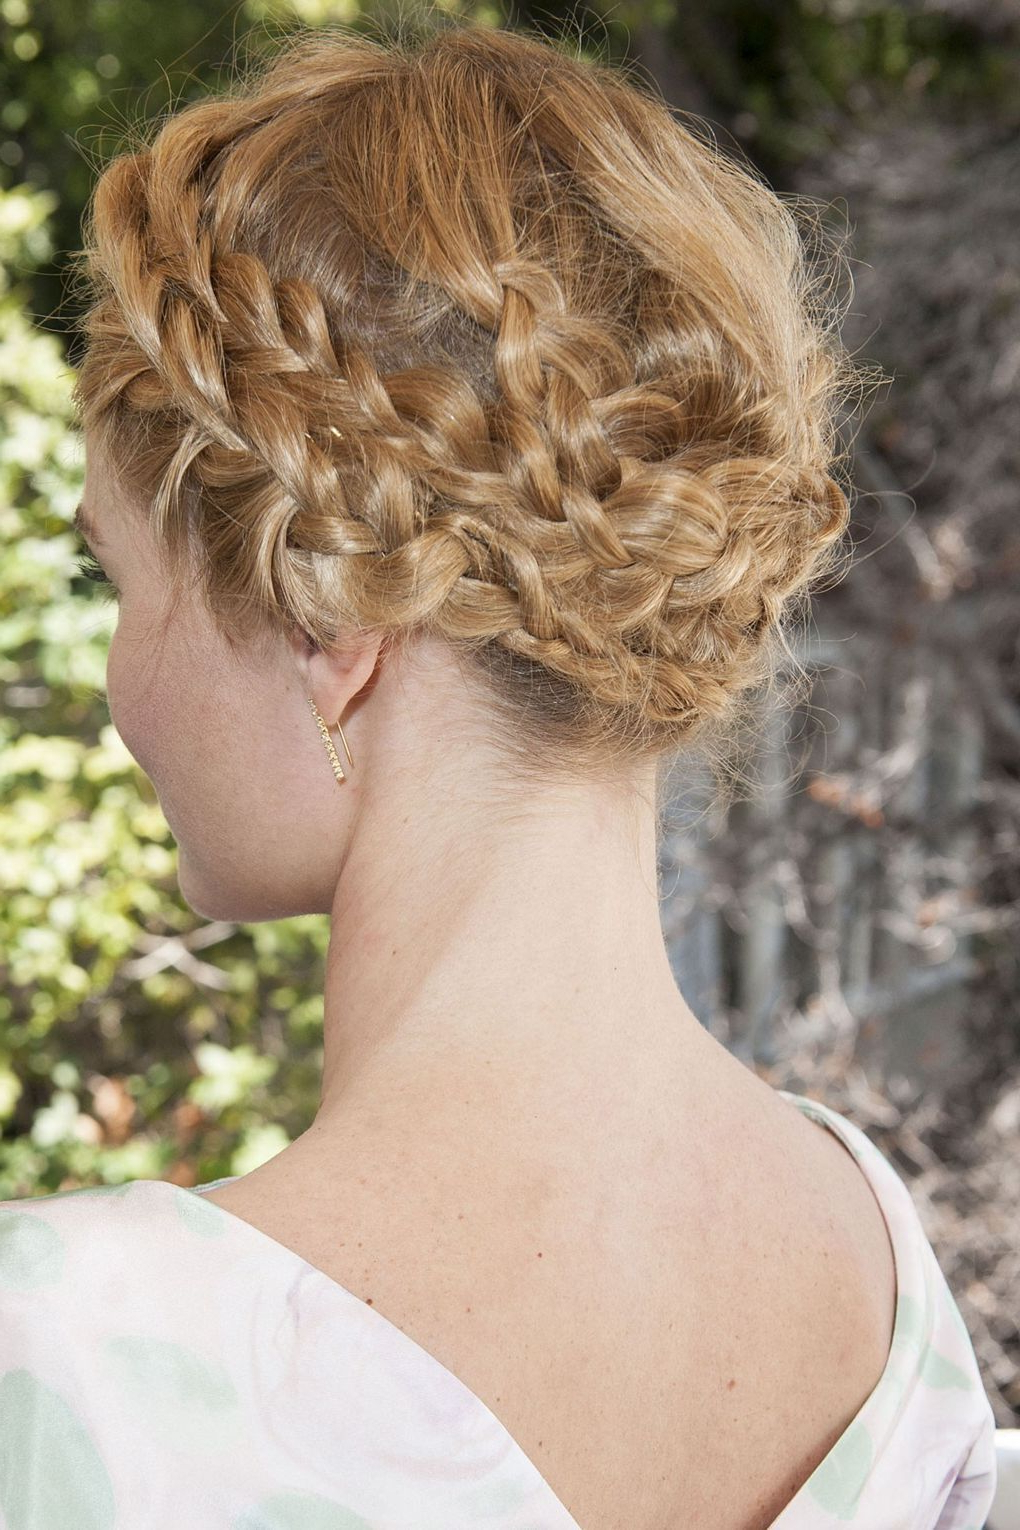 Heading To Glastonbury This Weekend? Check Out These Braided Throughout Most Current Halo Braided Hairstyles With Long Tendrils (View 3 of 20)